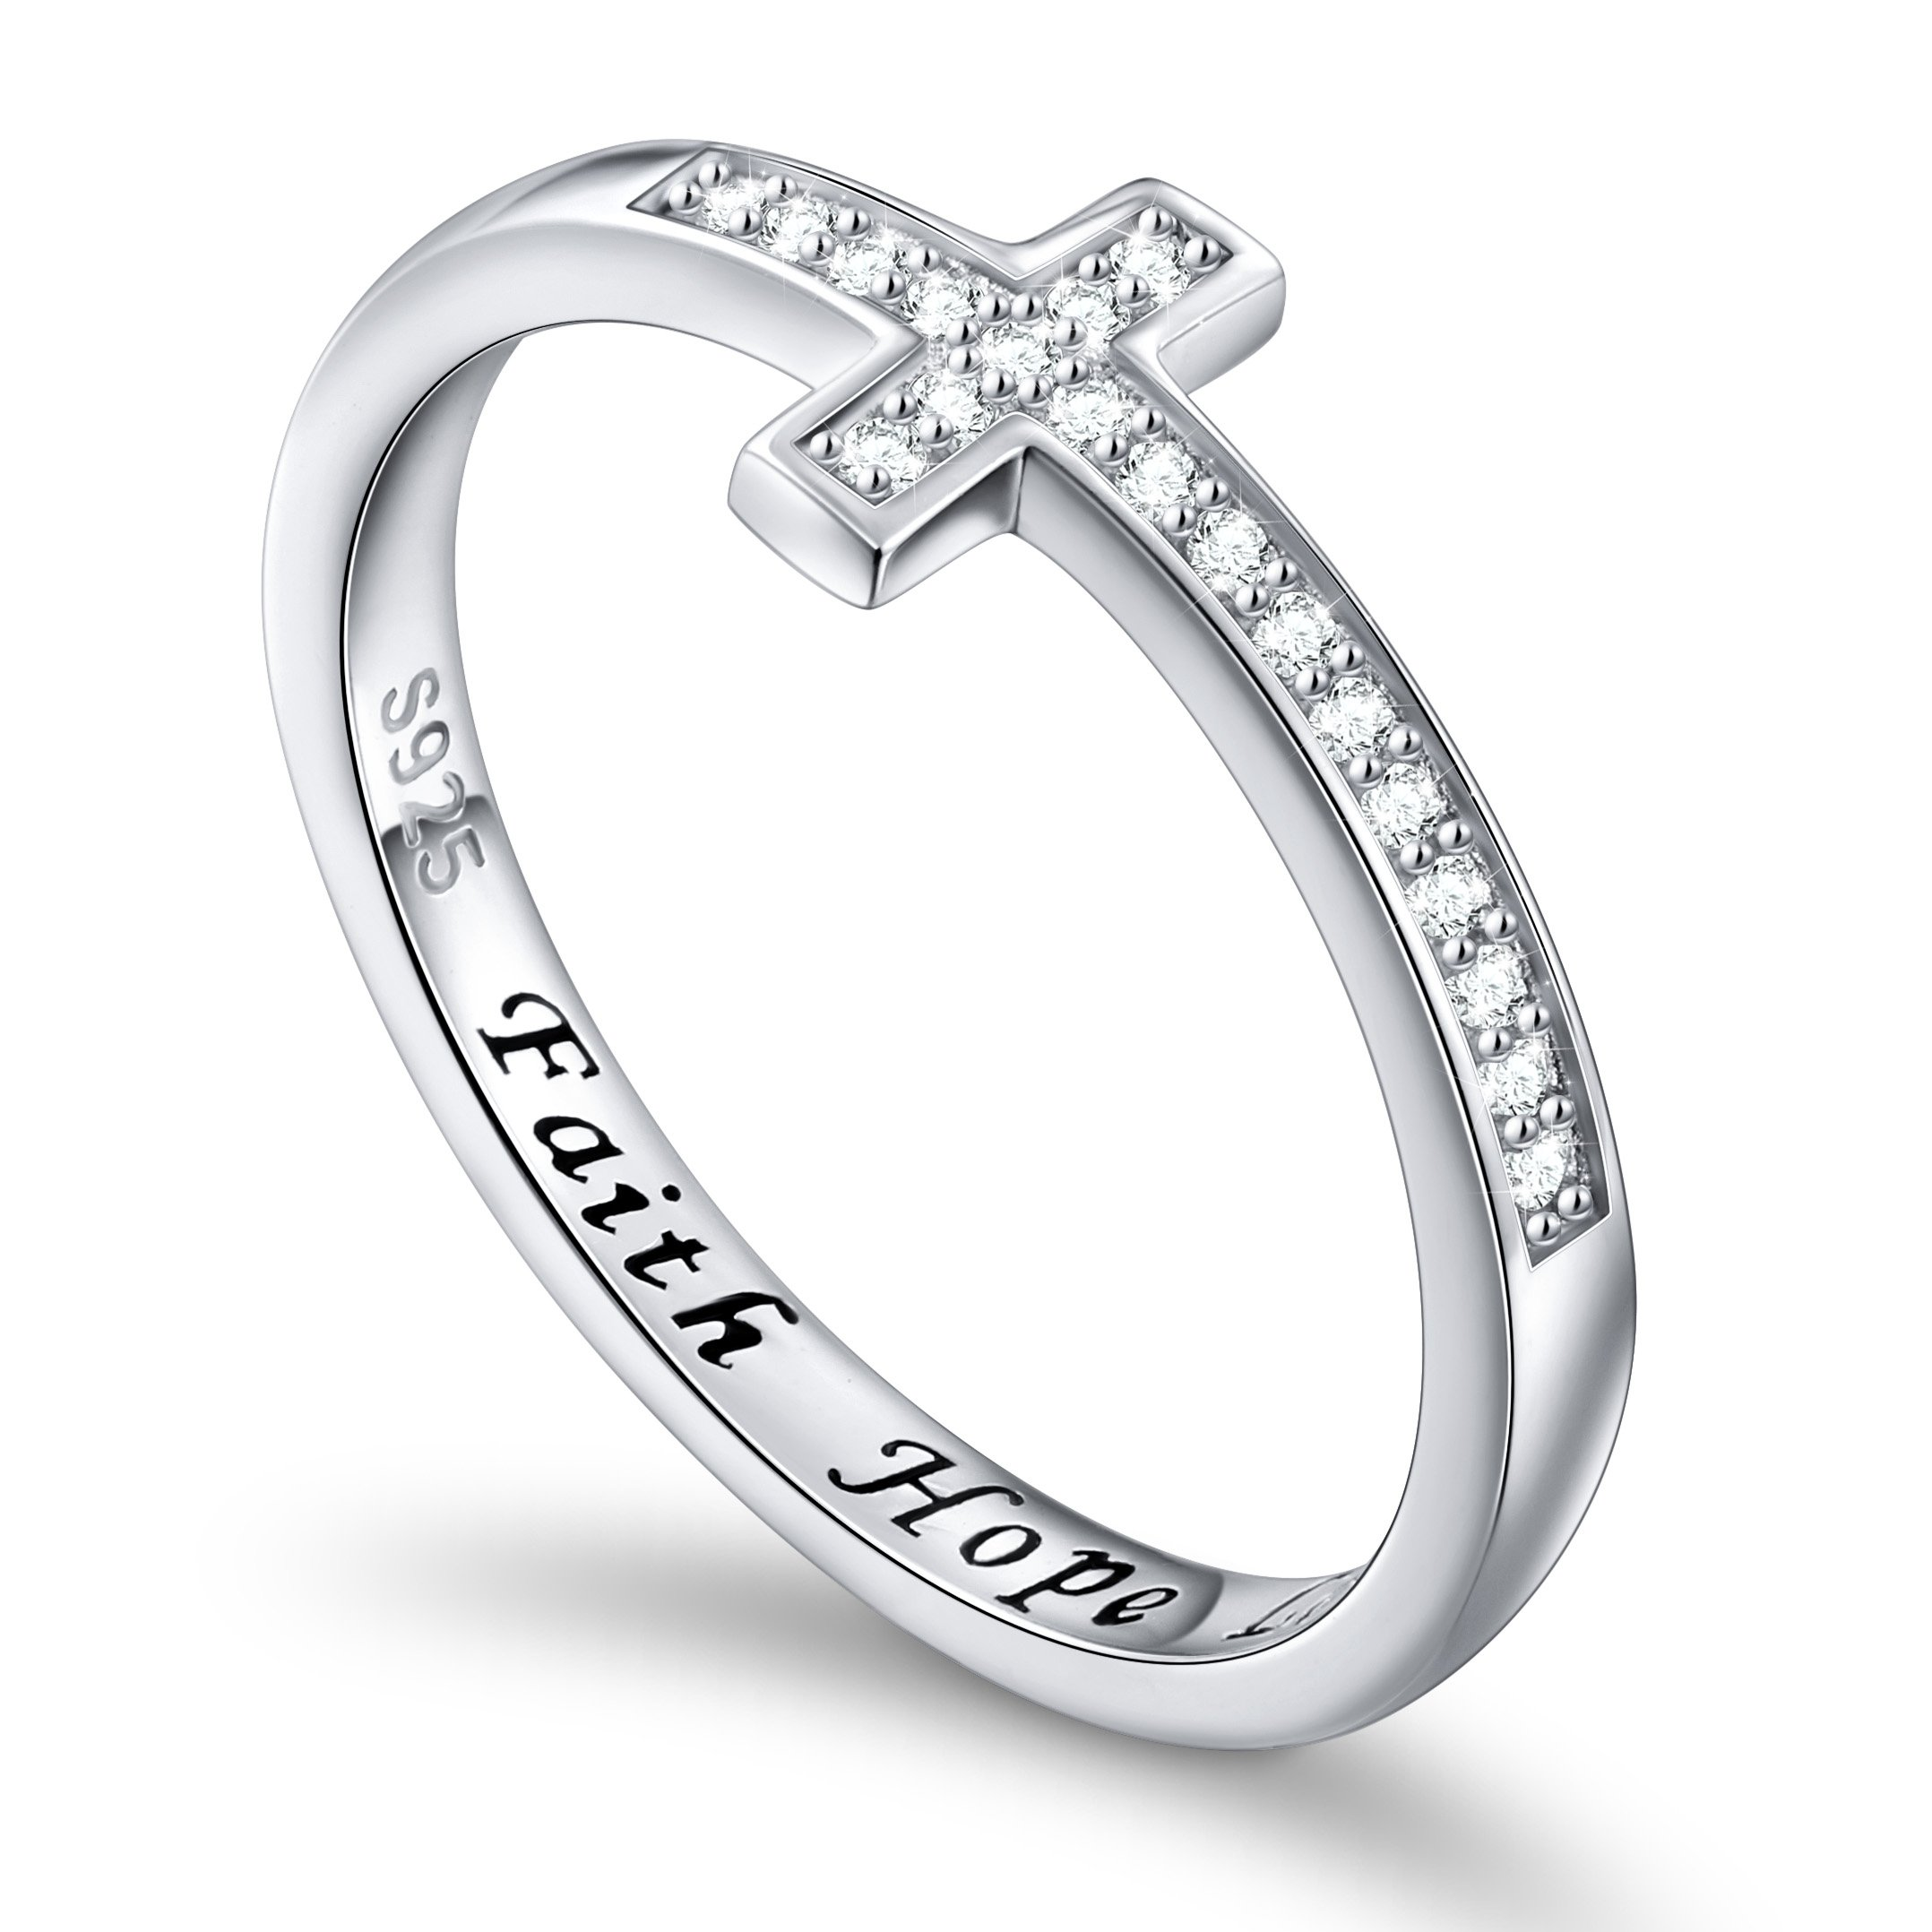 DAOCHONG Inspirational Jewelry Sterling Silver Engraved Faith Hope Love Sideway Cross Ring, Size 6 7 8 (9)